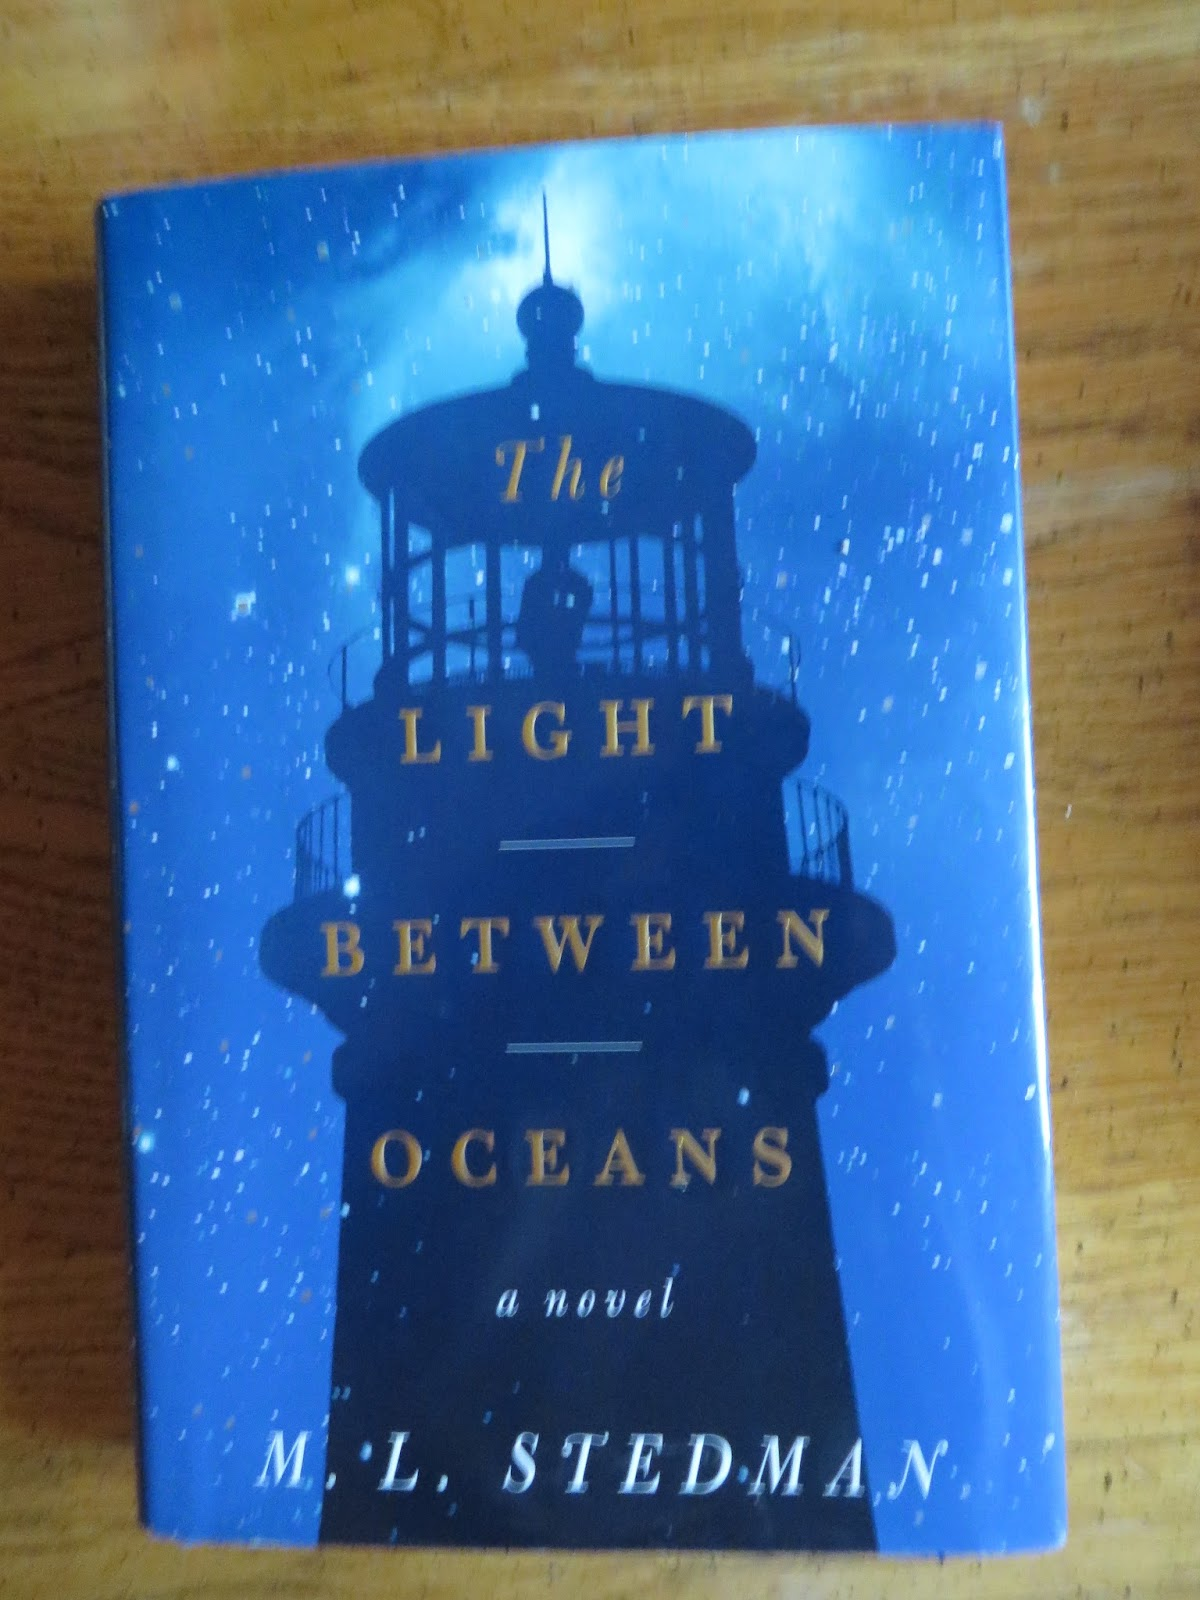 The Light Between Oceans Is A Mesmerizing Debut Novel Written By Australian  Born Author M.L.(Margot) Stedman. The Story Is Set On A Tiny Island Off The  ...